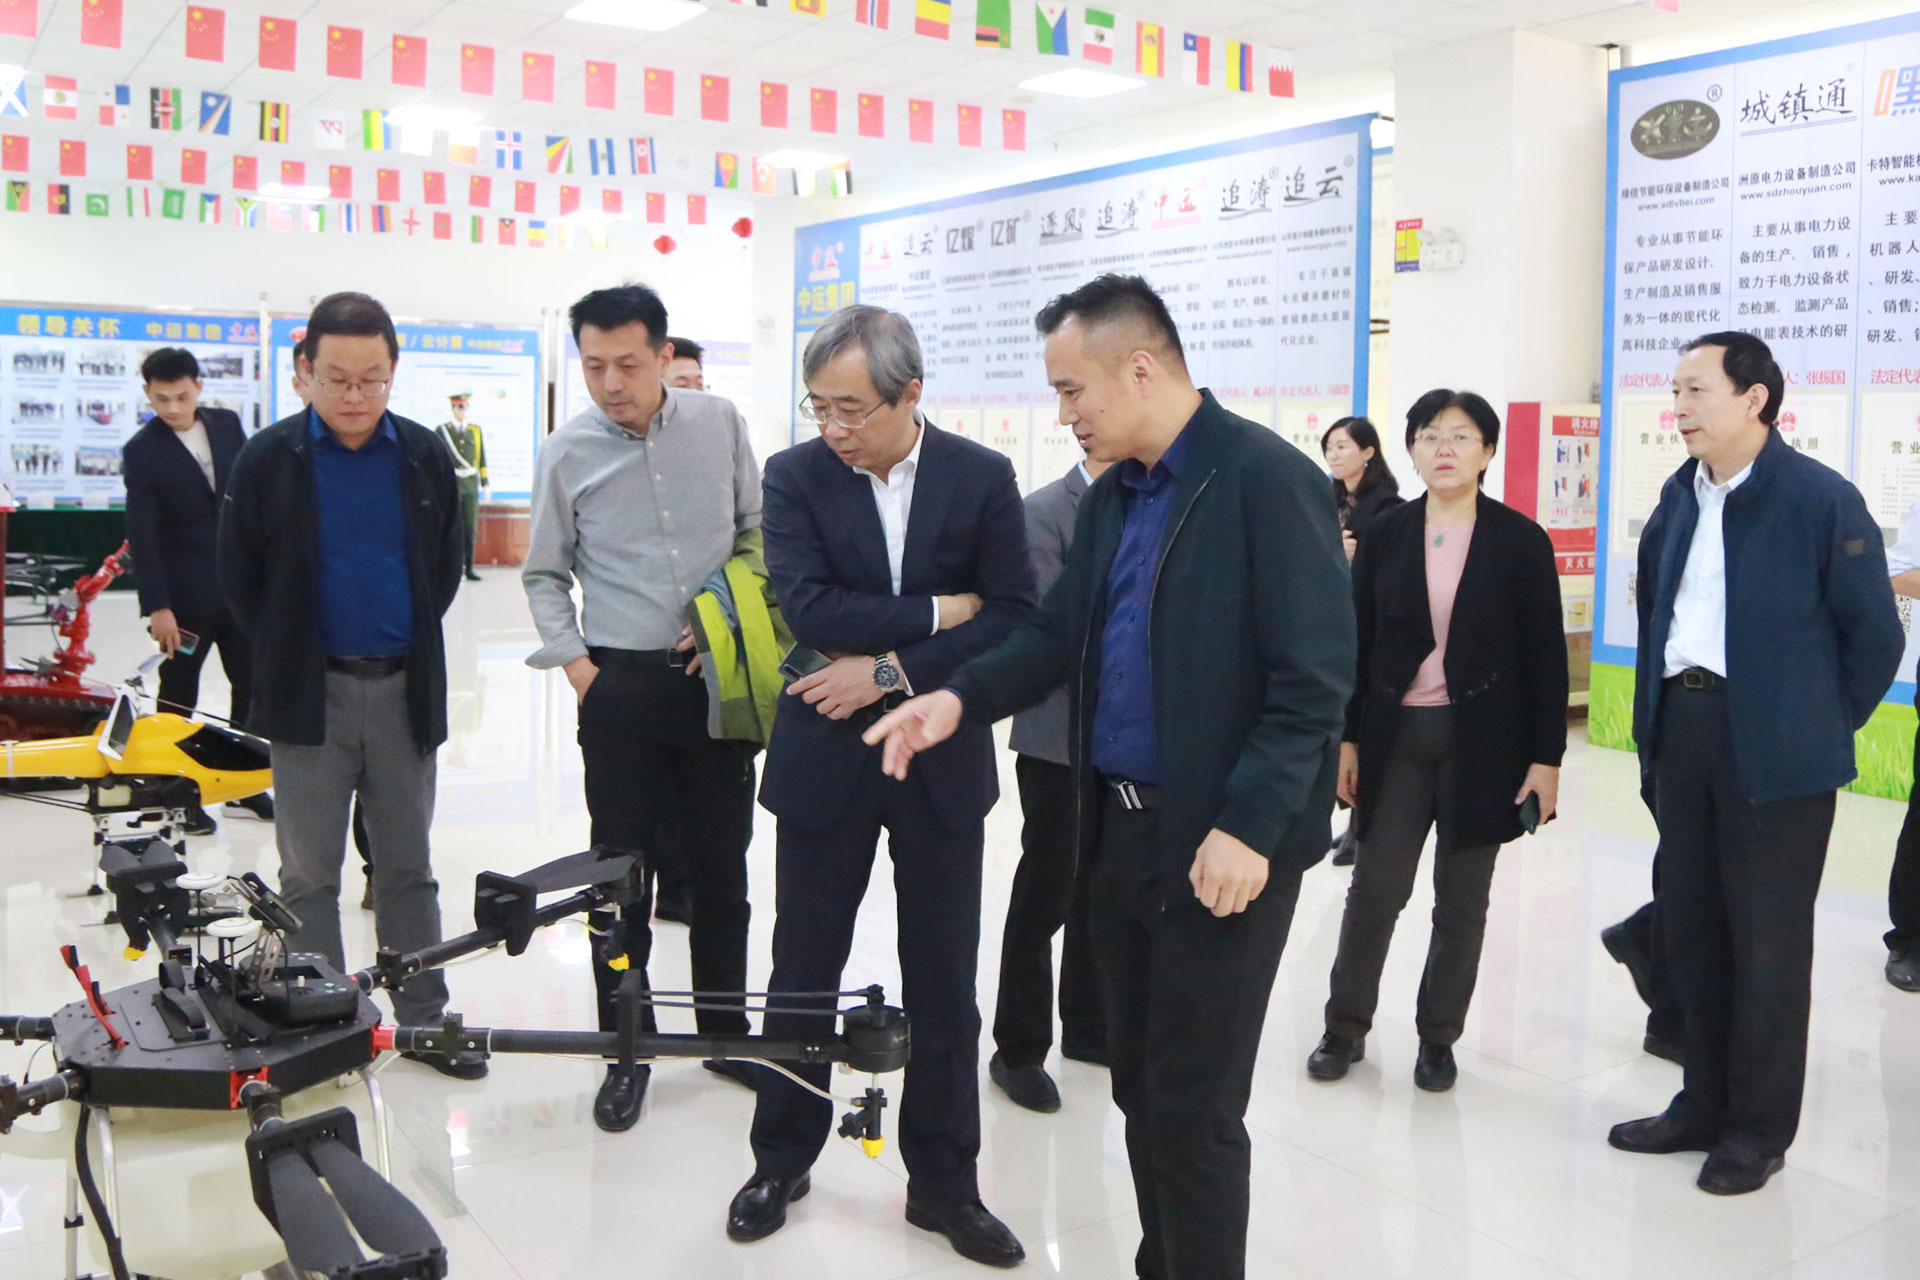 Warmly Welcome The Leaders Of Shandong Provincial Department Of Human Resources And Social Security To Visit China Coal Group